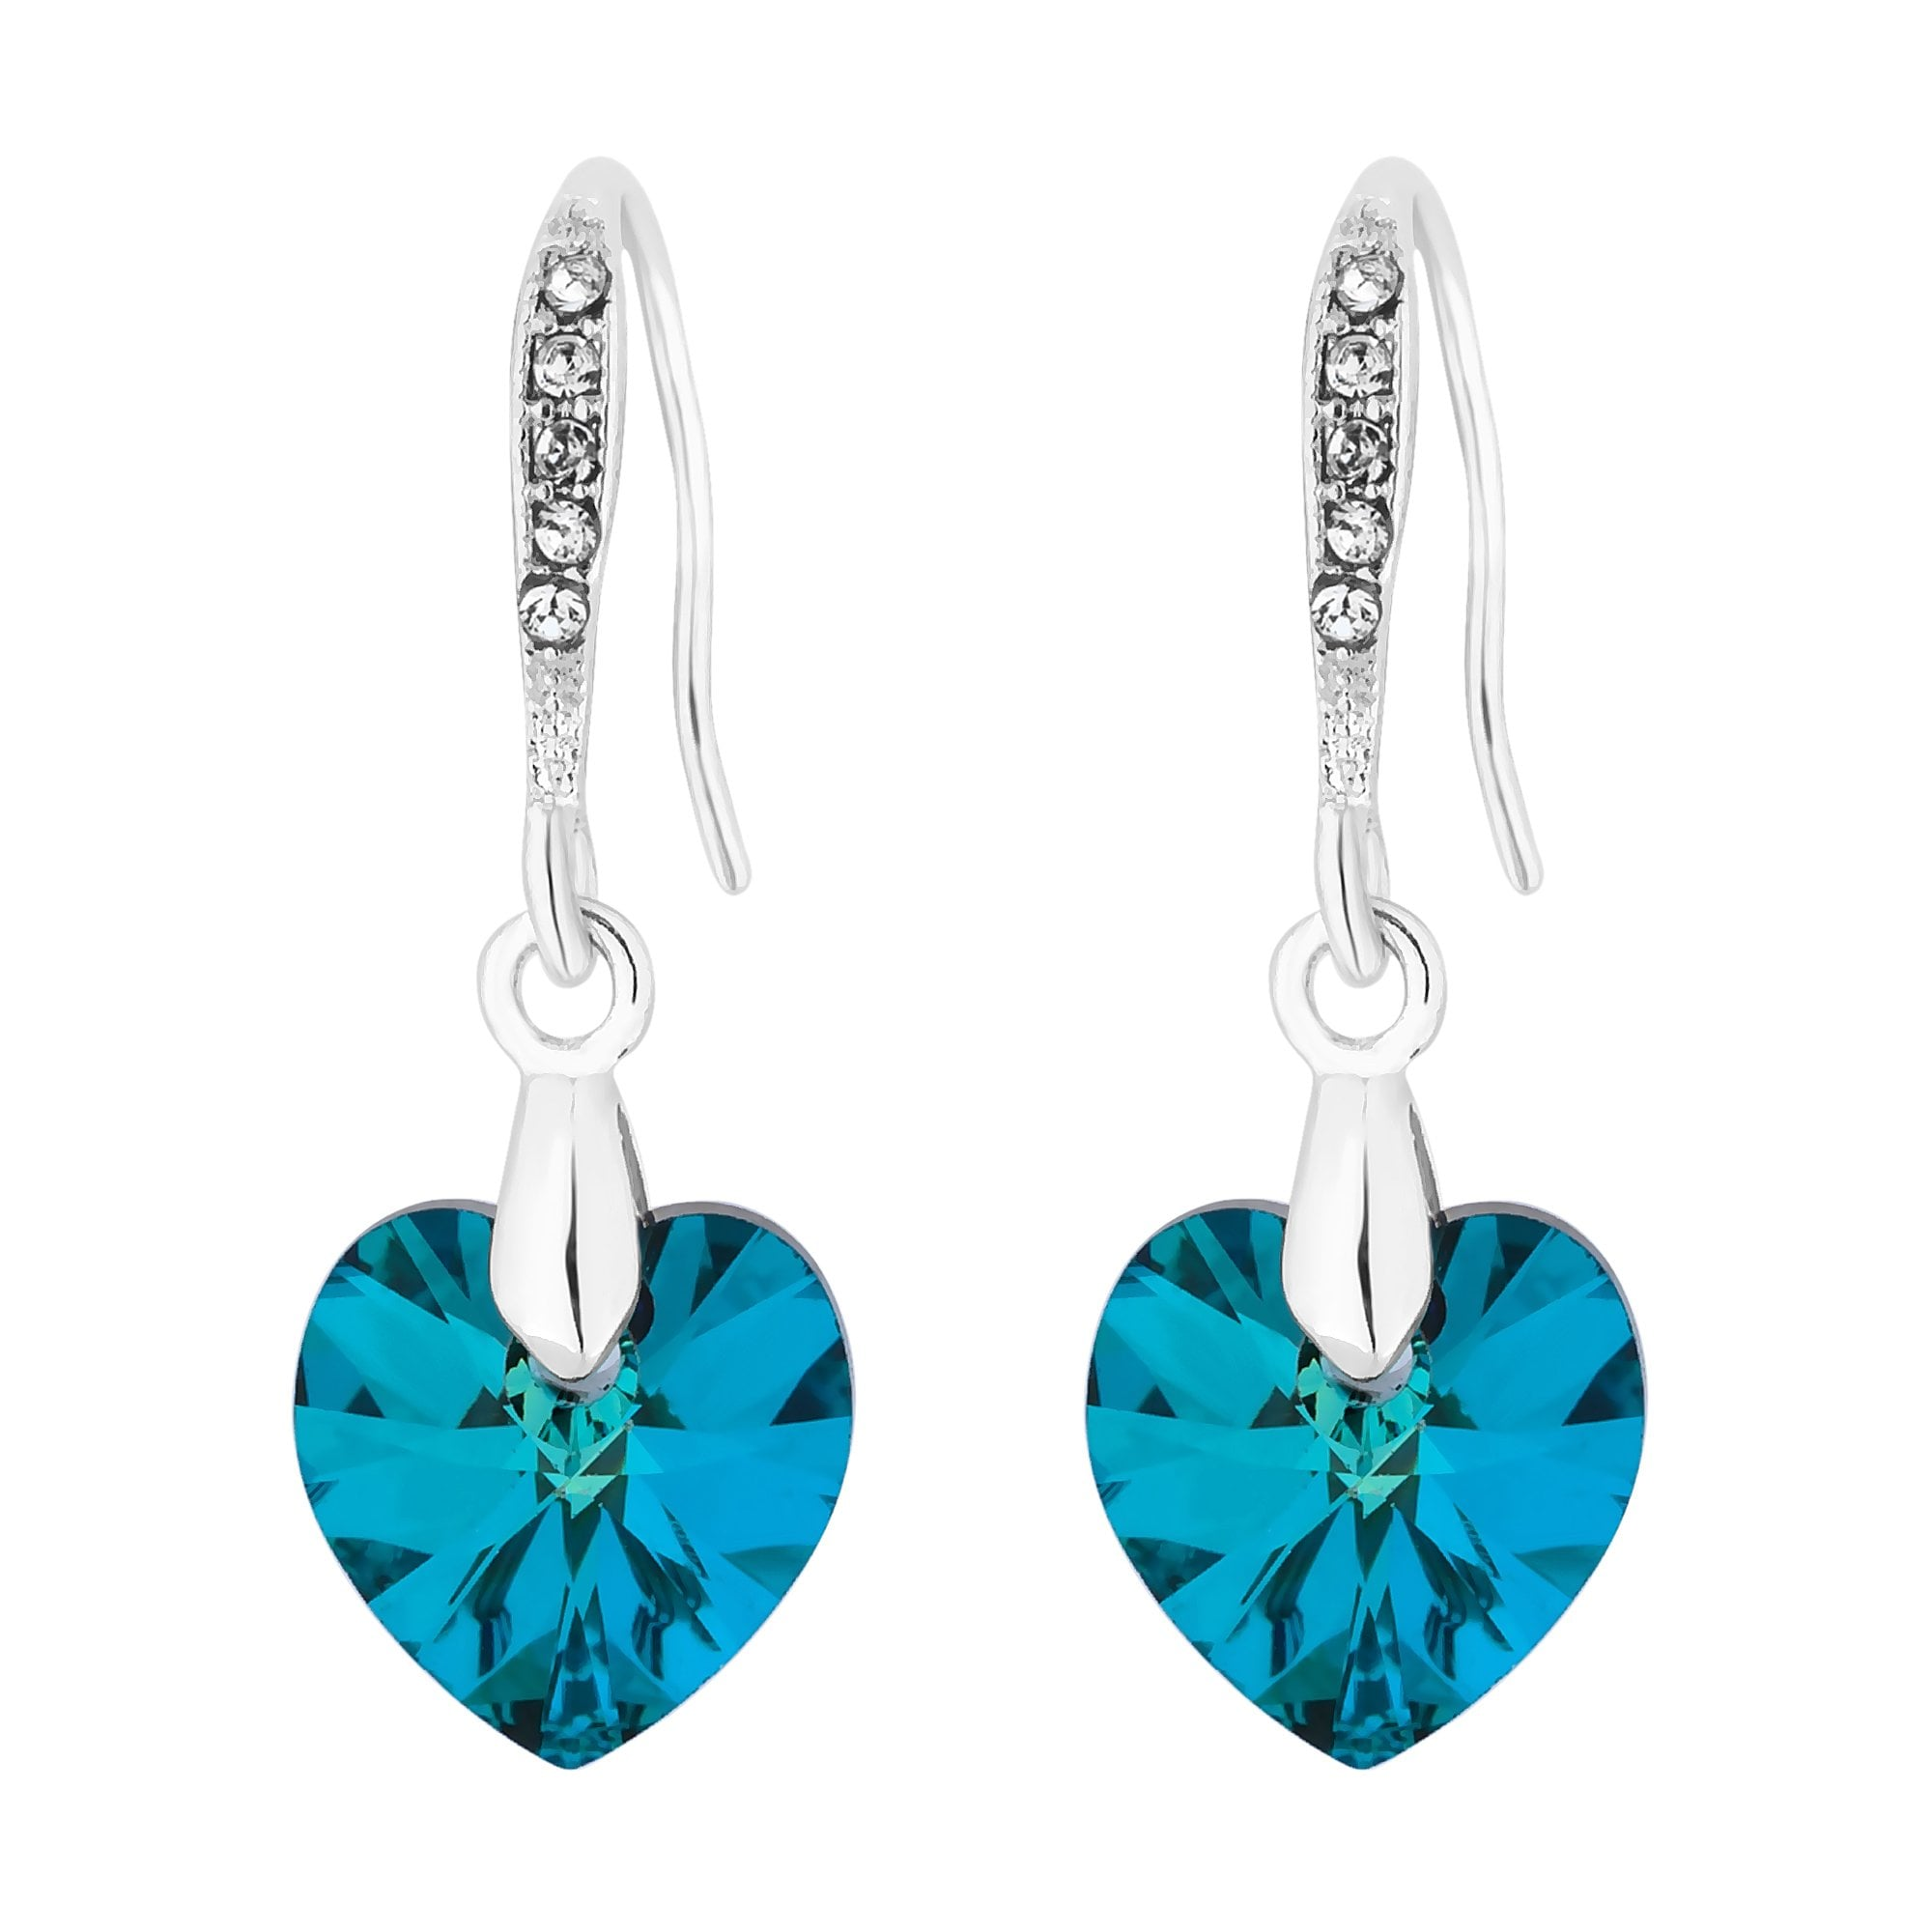 c353166b7 Jon Richard made with Swarovski® crystals Silver Plated Blue Heart Drop  Earring Embellished With Swarovski